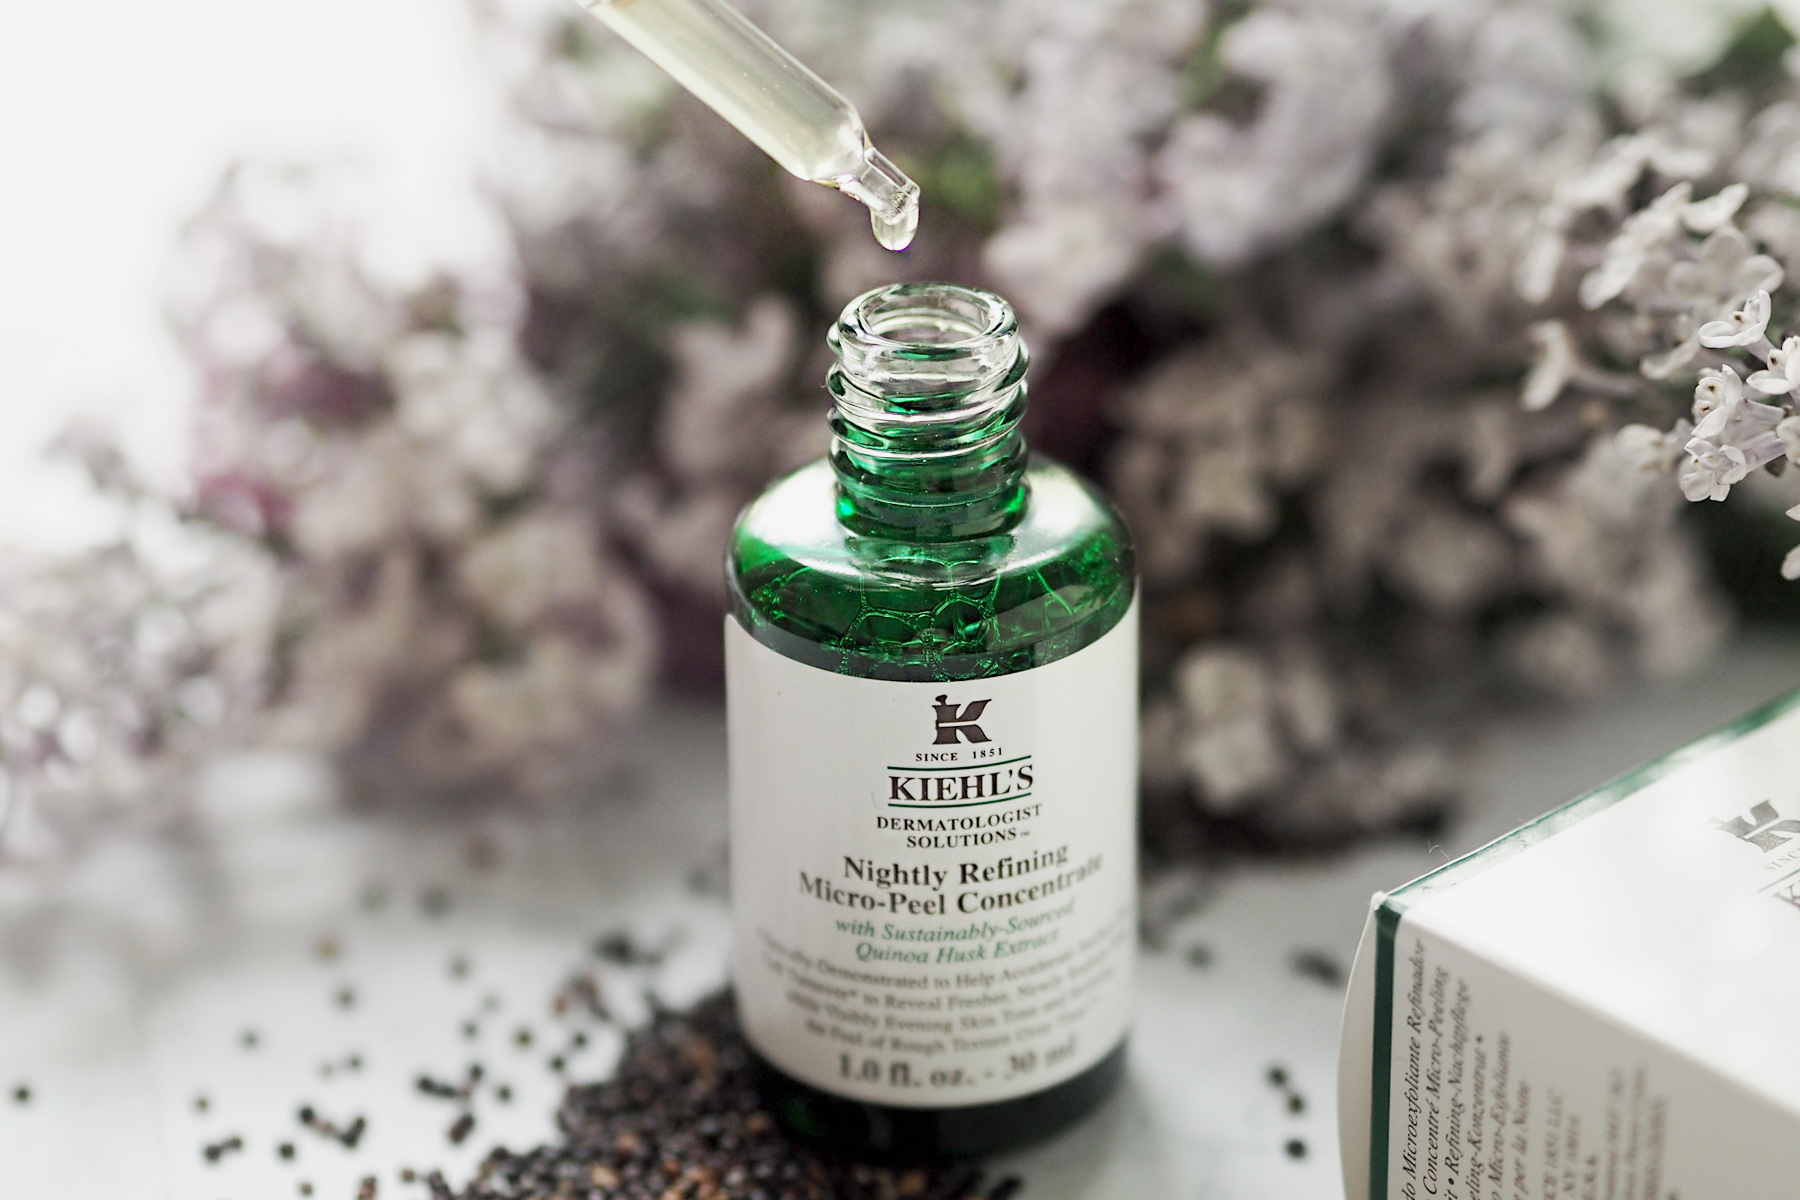 kiehl's quinoa Nightly Refining Micro-Peel Concentrate overnight peeling anti-aging effect beauty beautyblogger cats & dogs blog ricarda schernus modeblogger 4